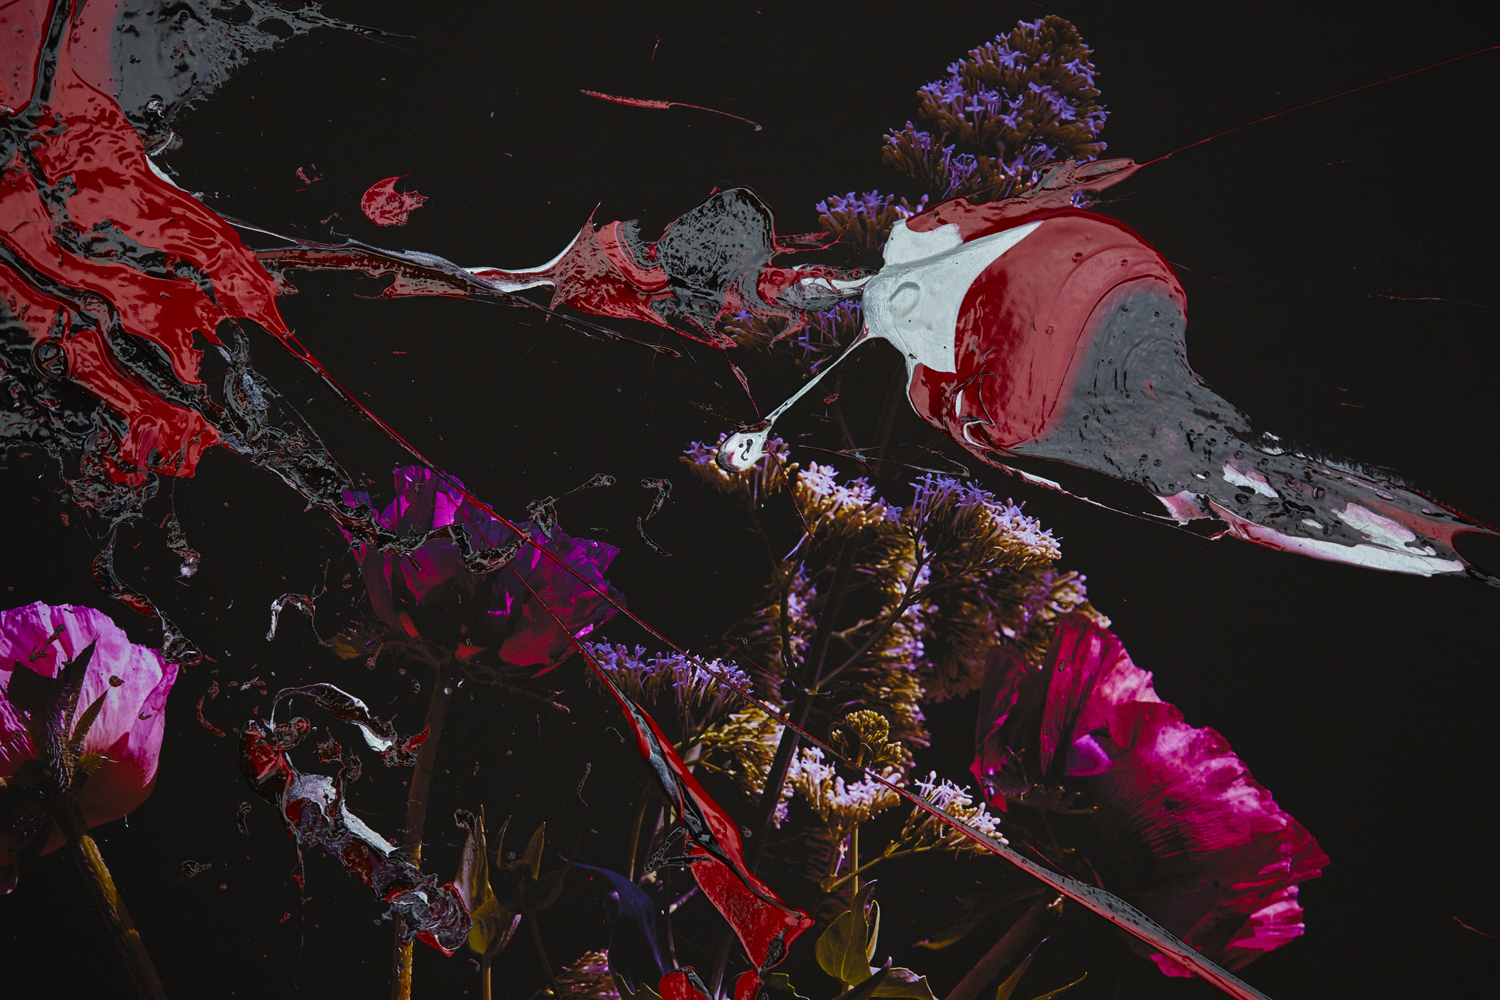 #painting - #photography - #fineart - #popart - #peterwesth - Peter Westh - @peterwesth - Flower Detail